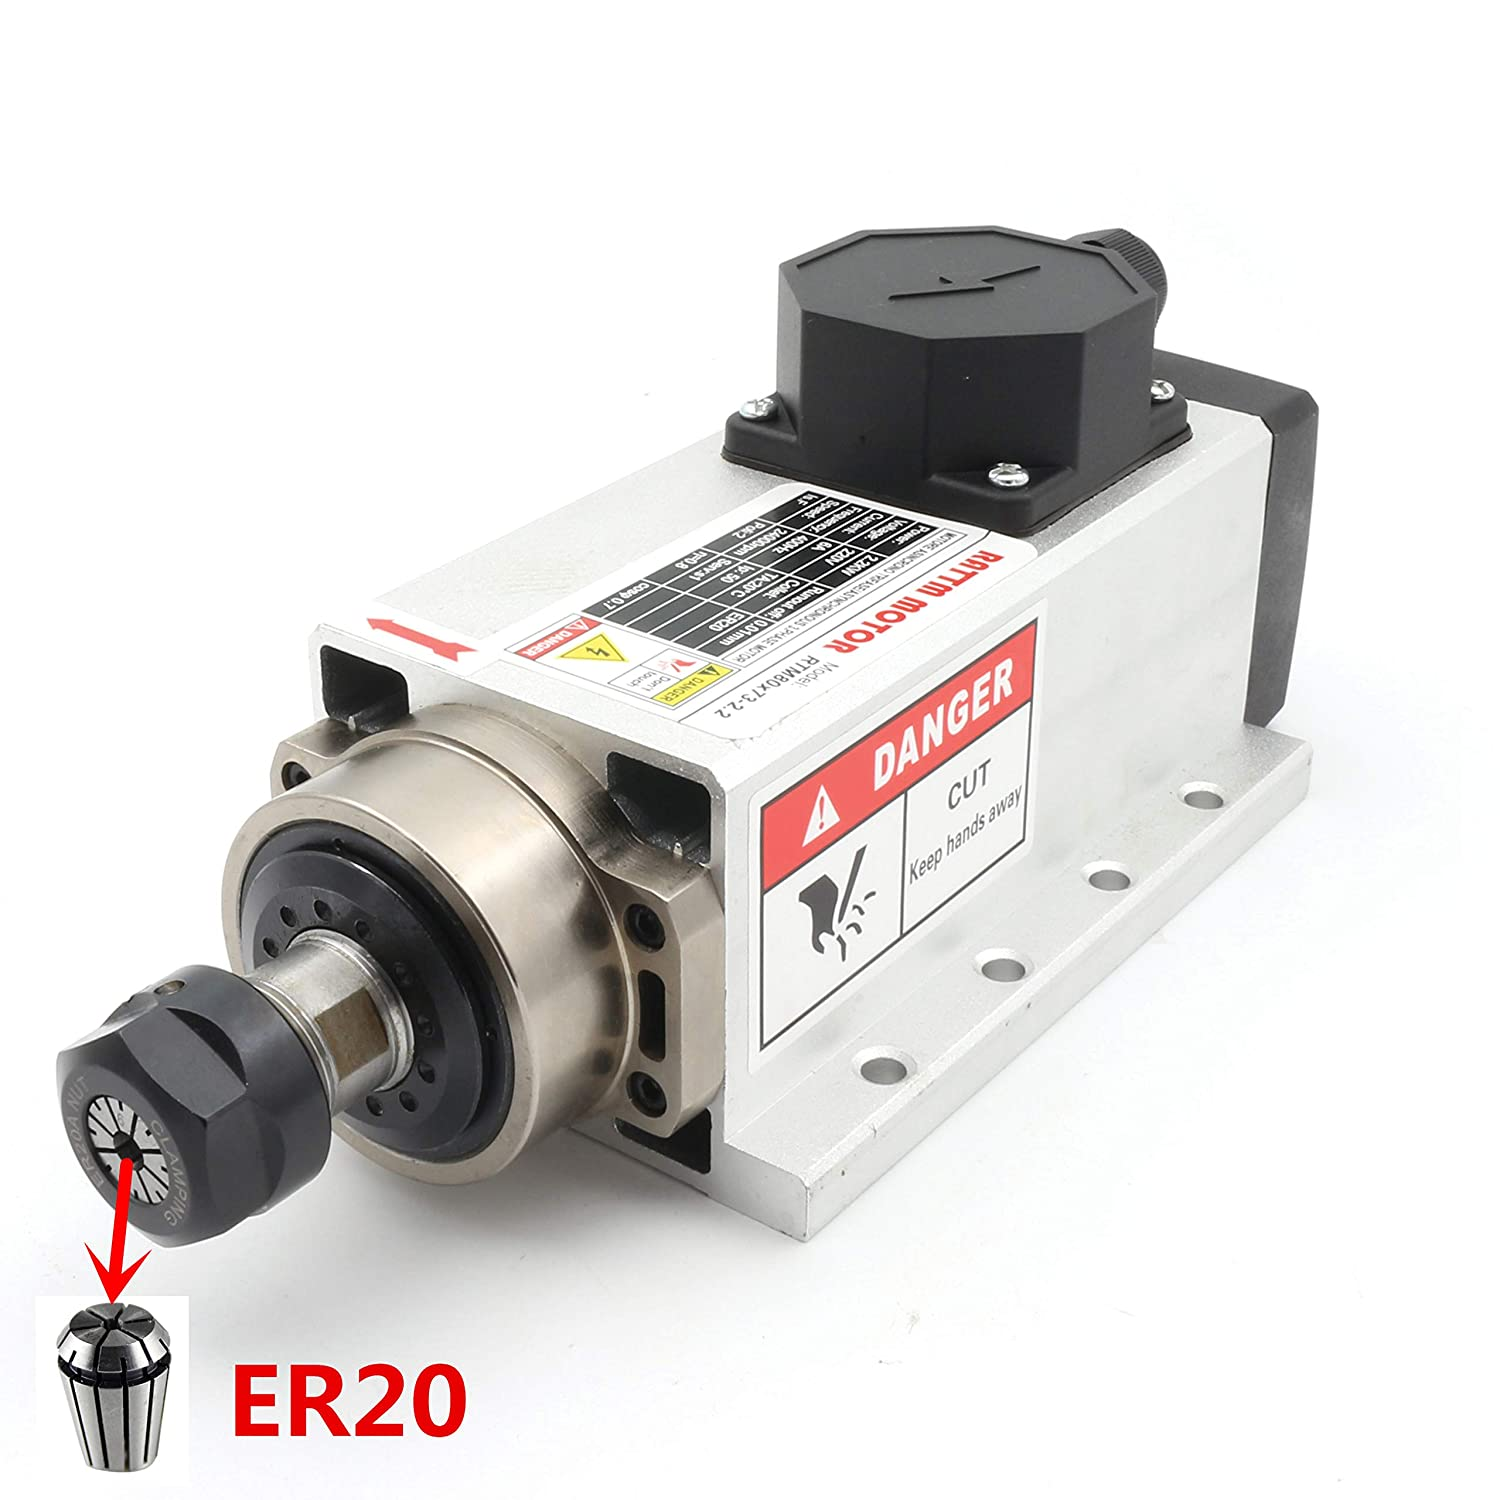 TOP FOUR BEARING ER20 4KW AIR COOLED SPINDLE MOTOR ENGRAVING MILLING GRINDING